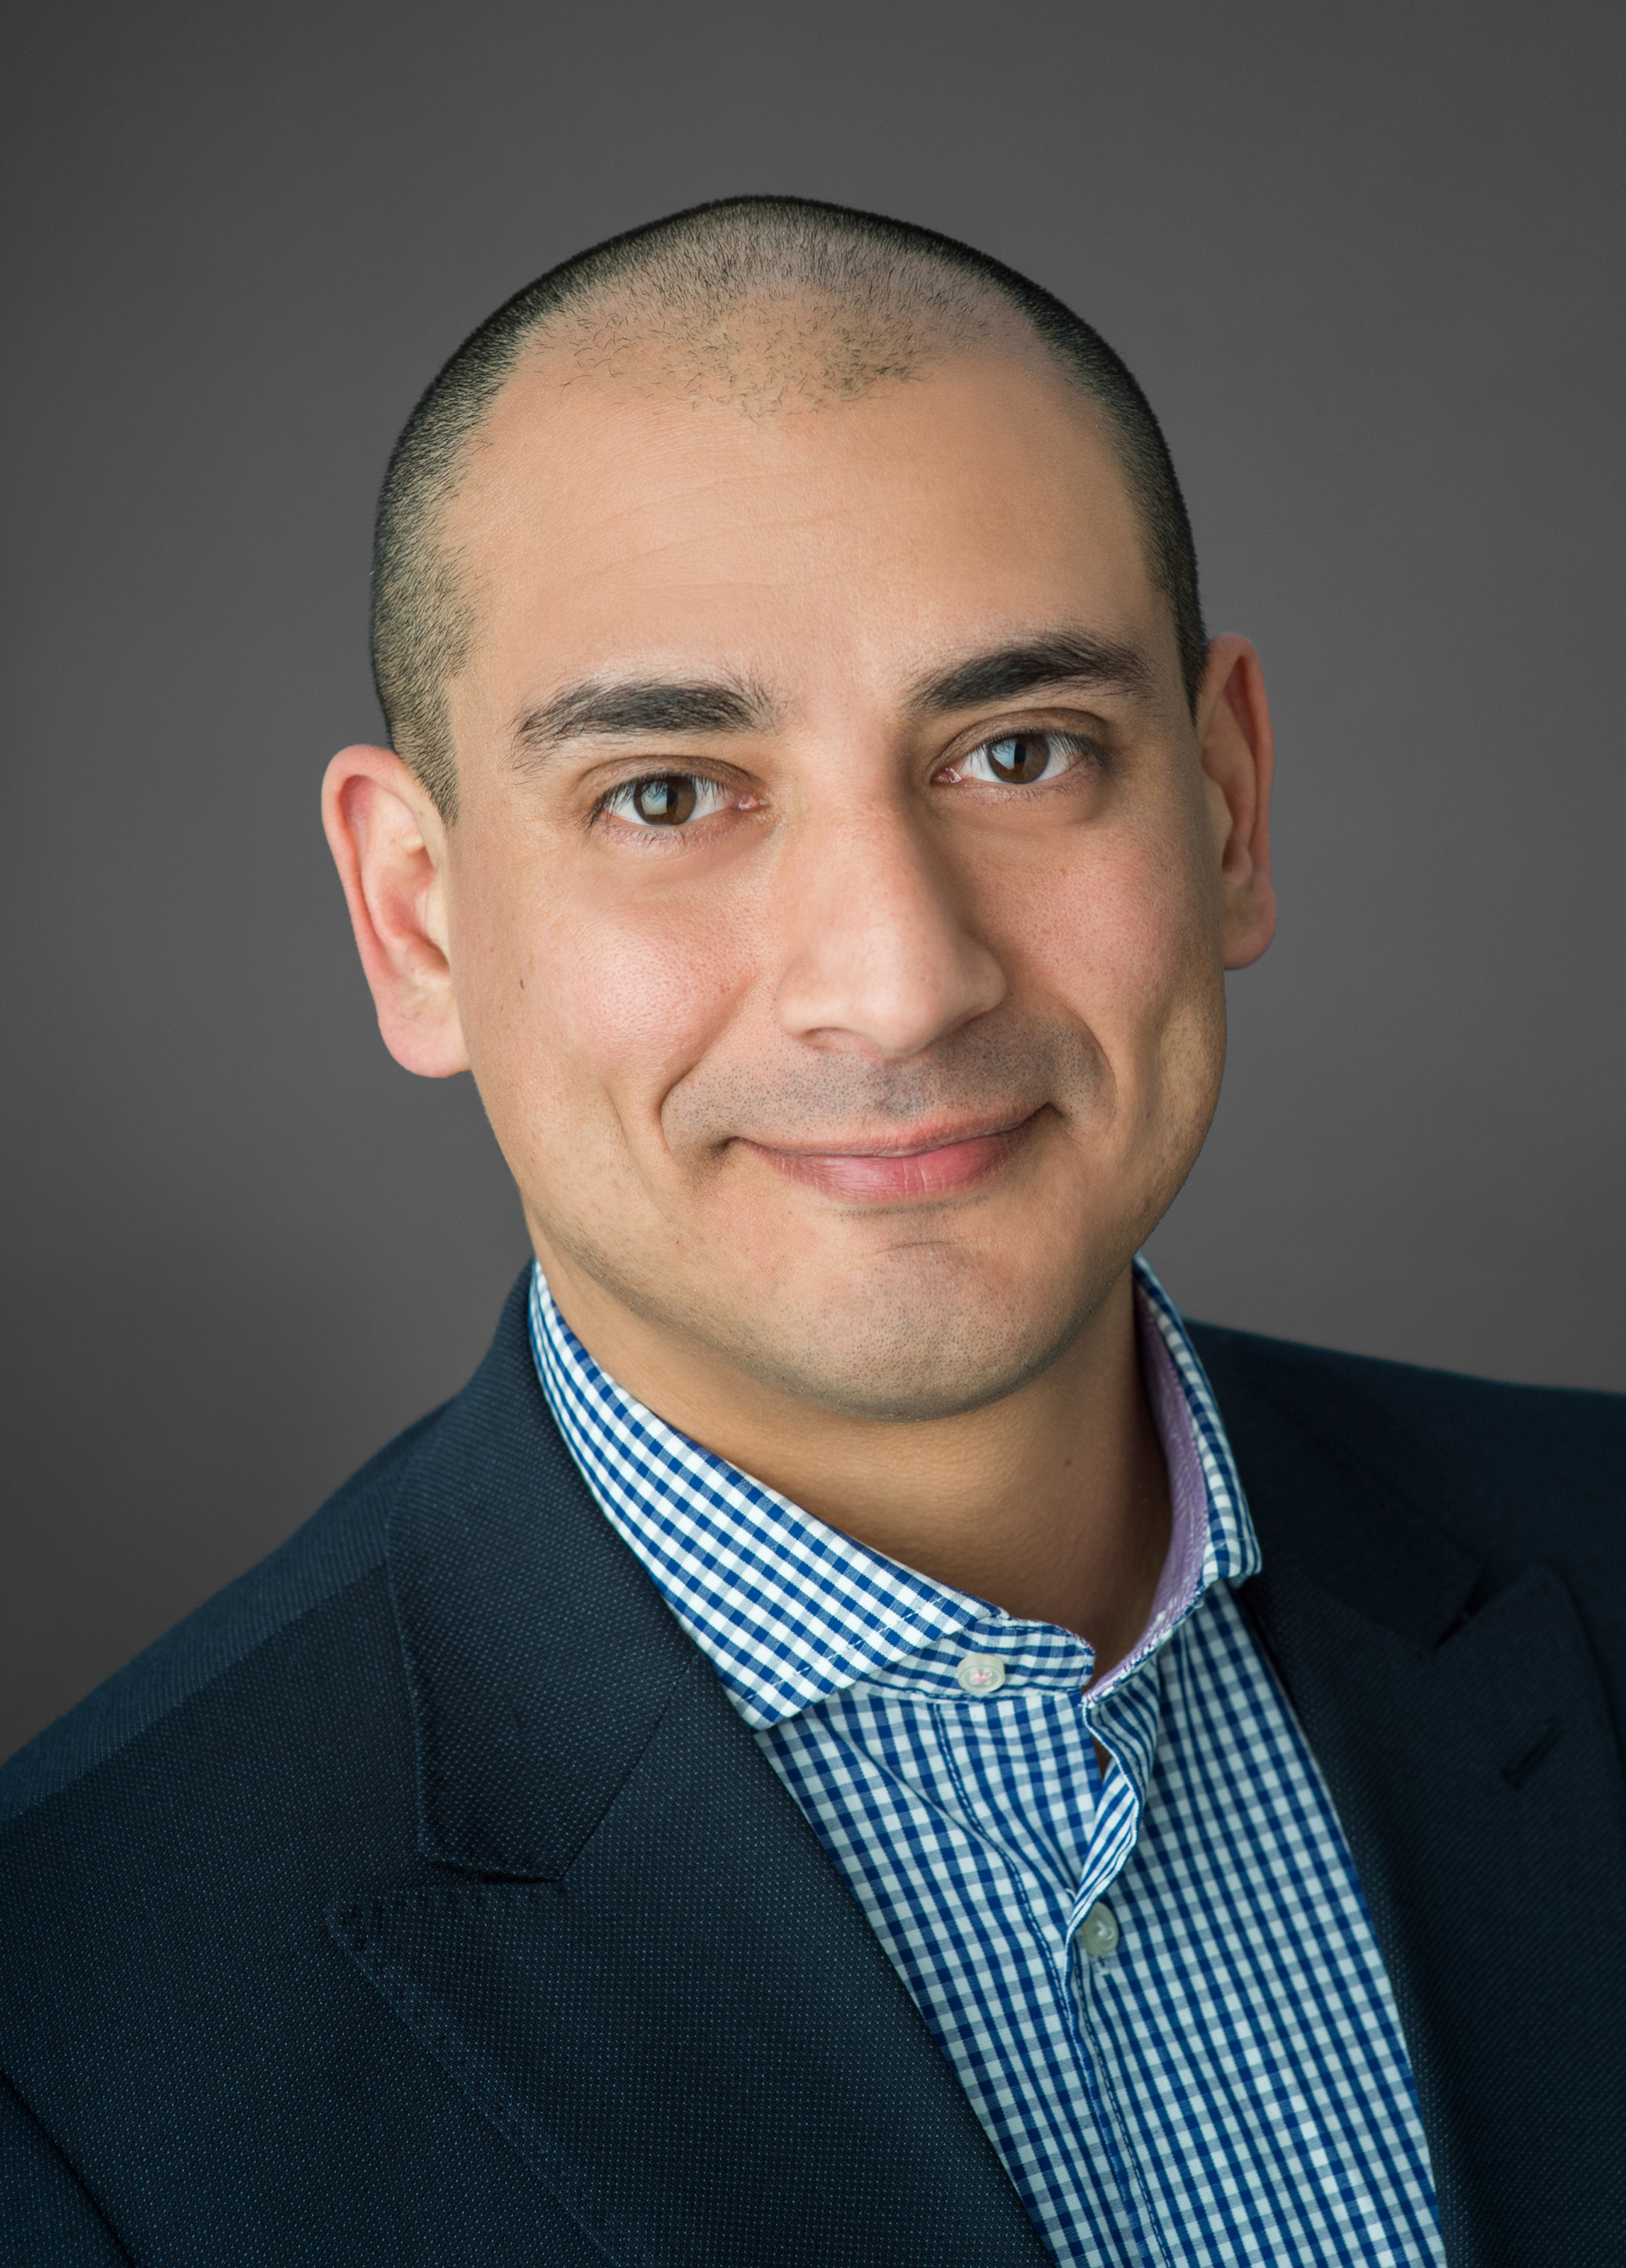 CBRE Appoints Abe Gamboa as Project Management Midwest Division Leader